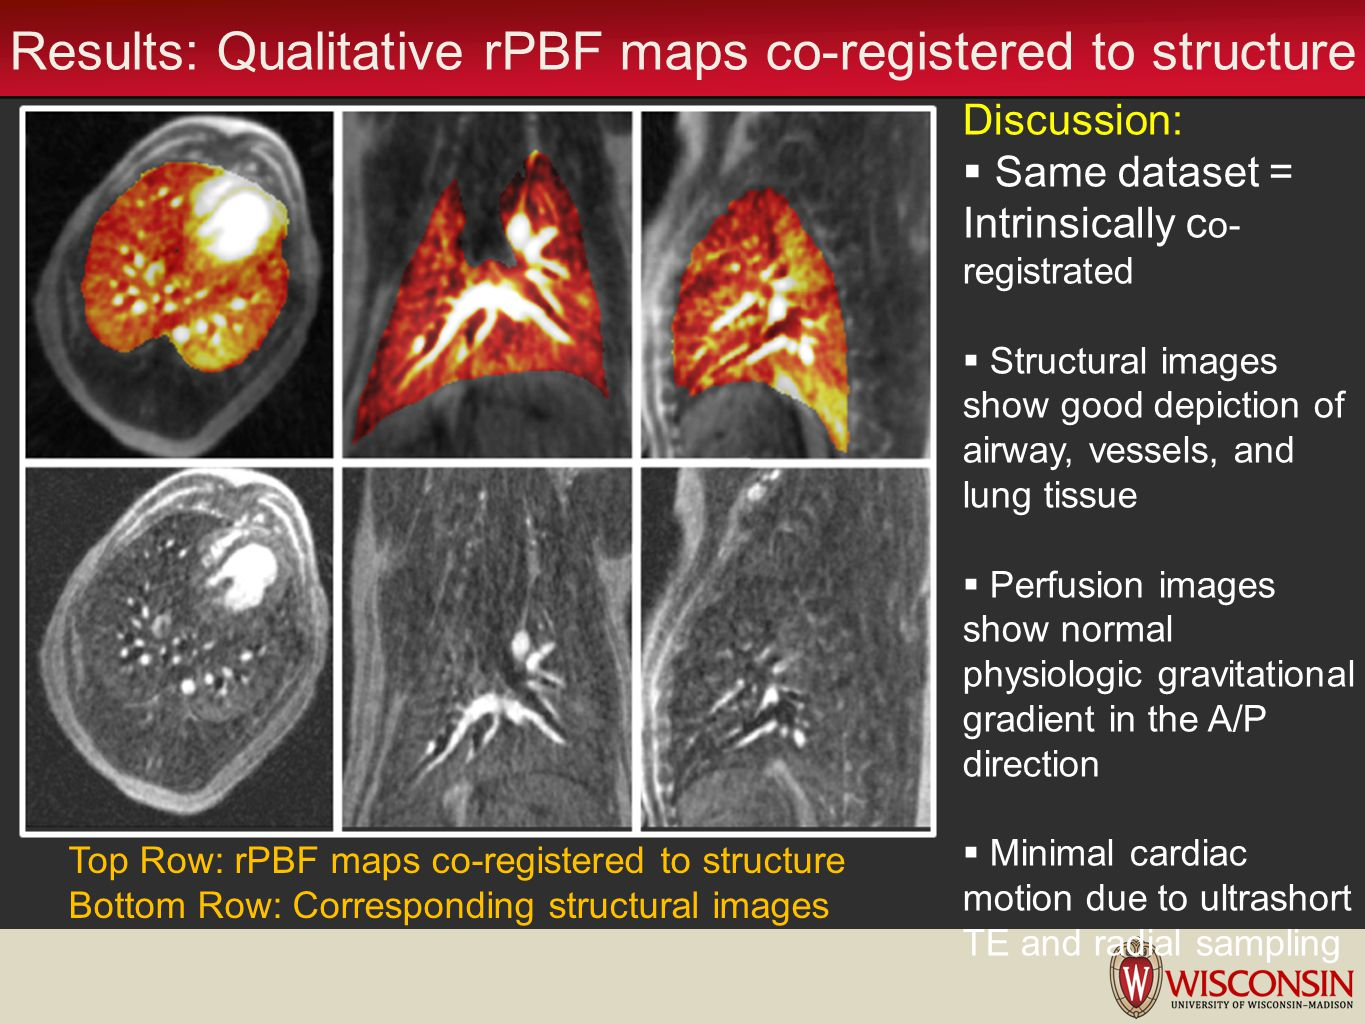 Results: Qualitative rPBF maps co-registered to structure